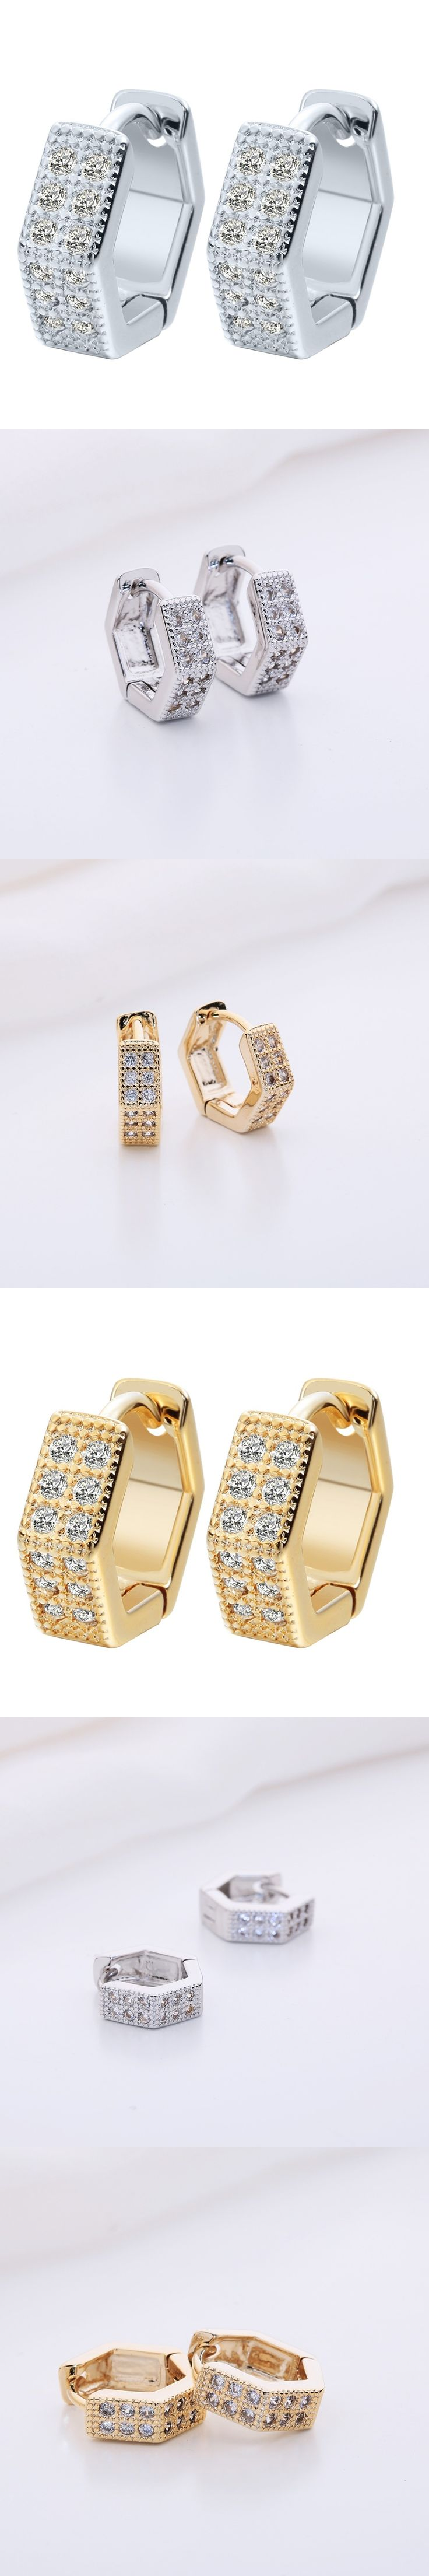 QIMING 2017 Silver Earrings Charms Geometric Jewelry New Gold Tone Women CZ Stone Crystal Wedding Earrings For Baby Girls A1279